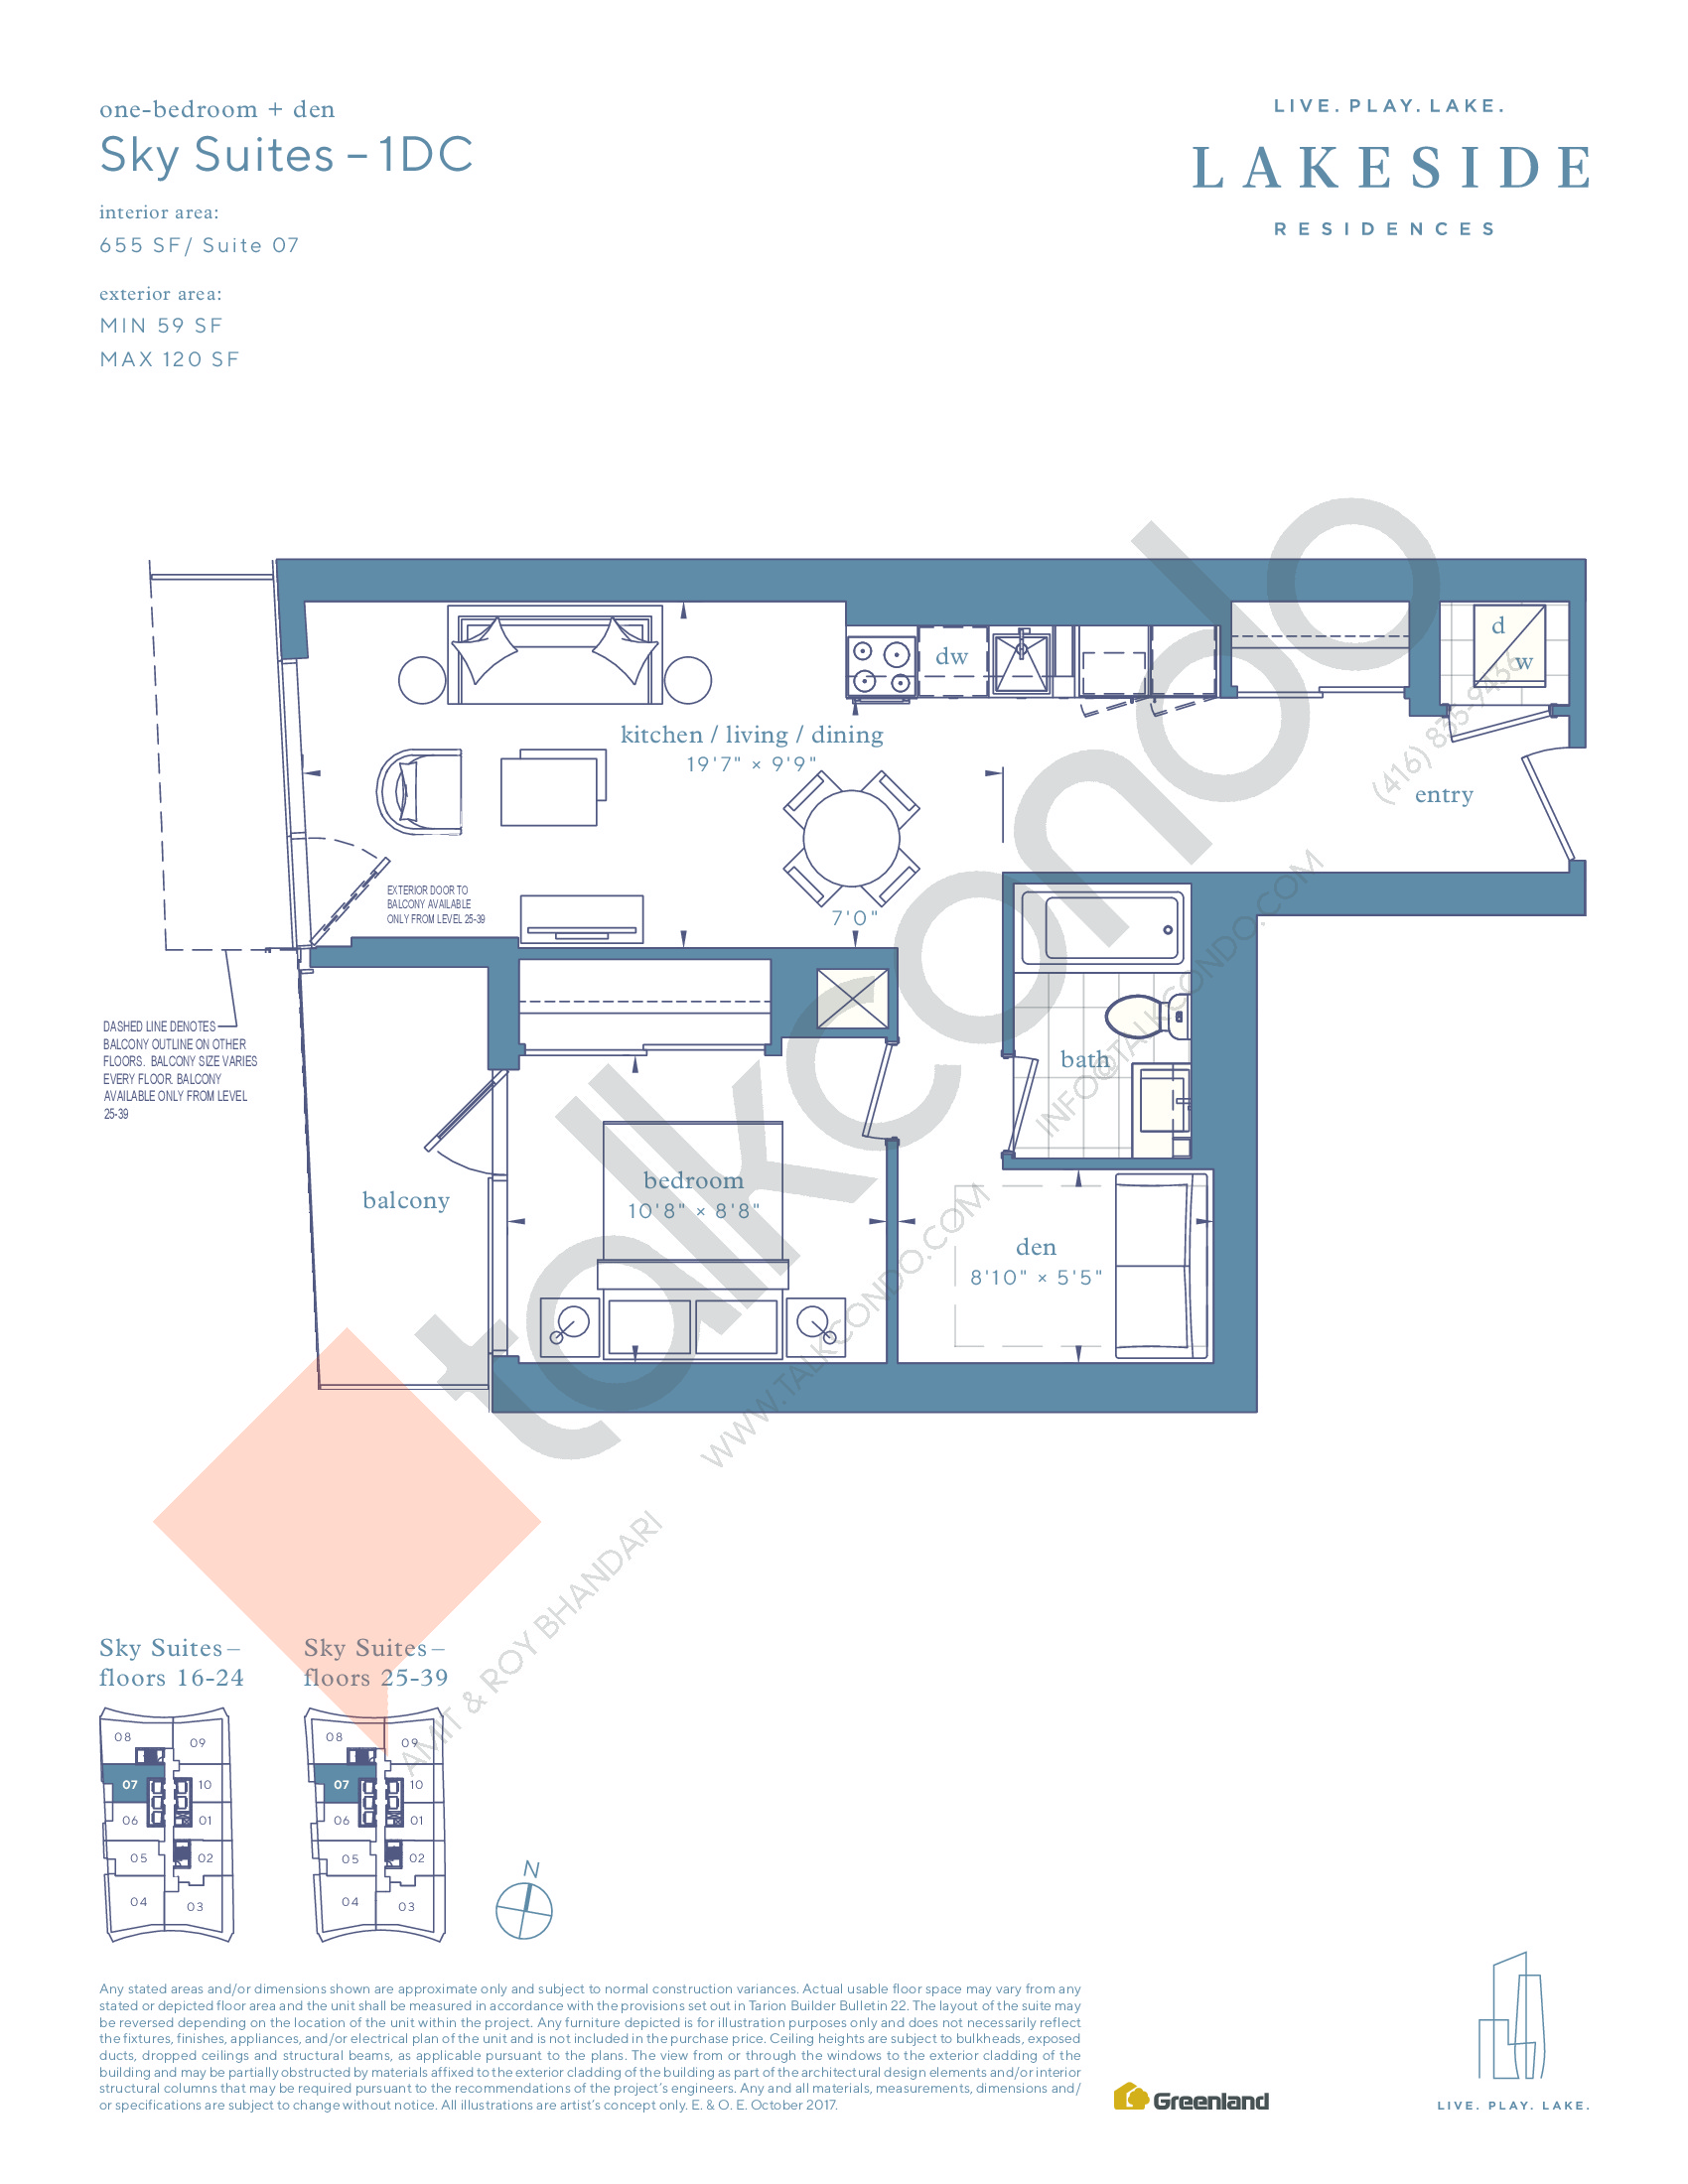 Sky Suites - 1DC Floor Plan at Lakeside Residences - 655 sq.ft